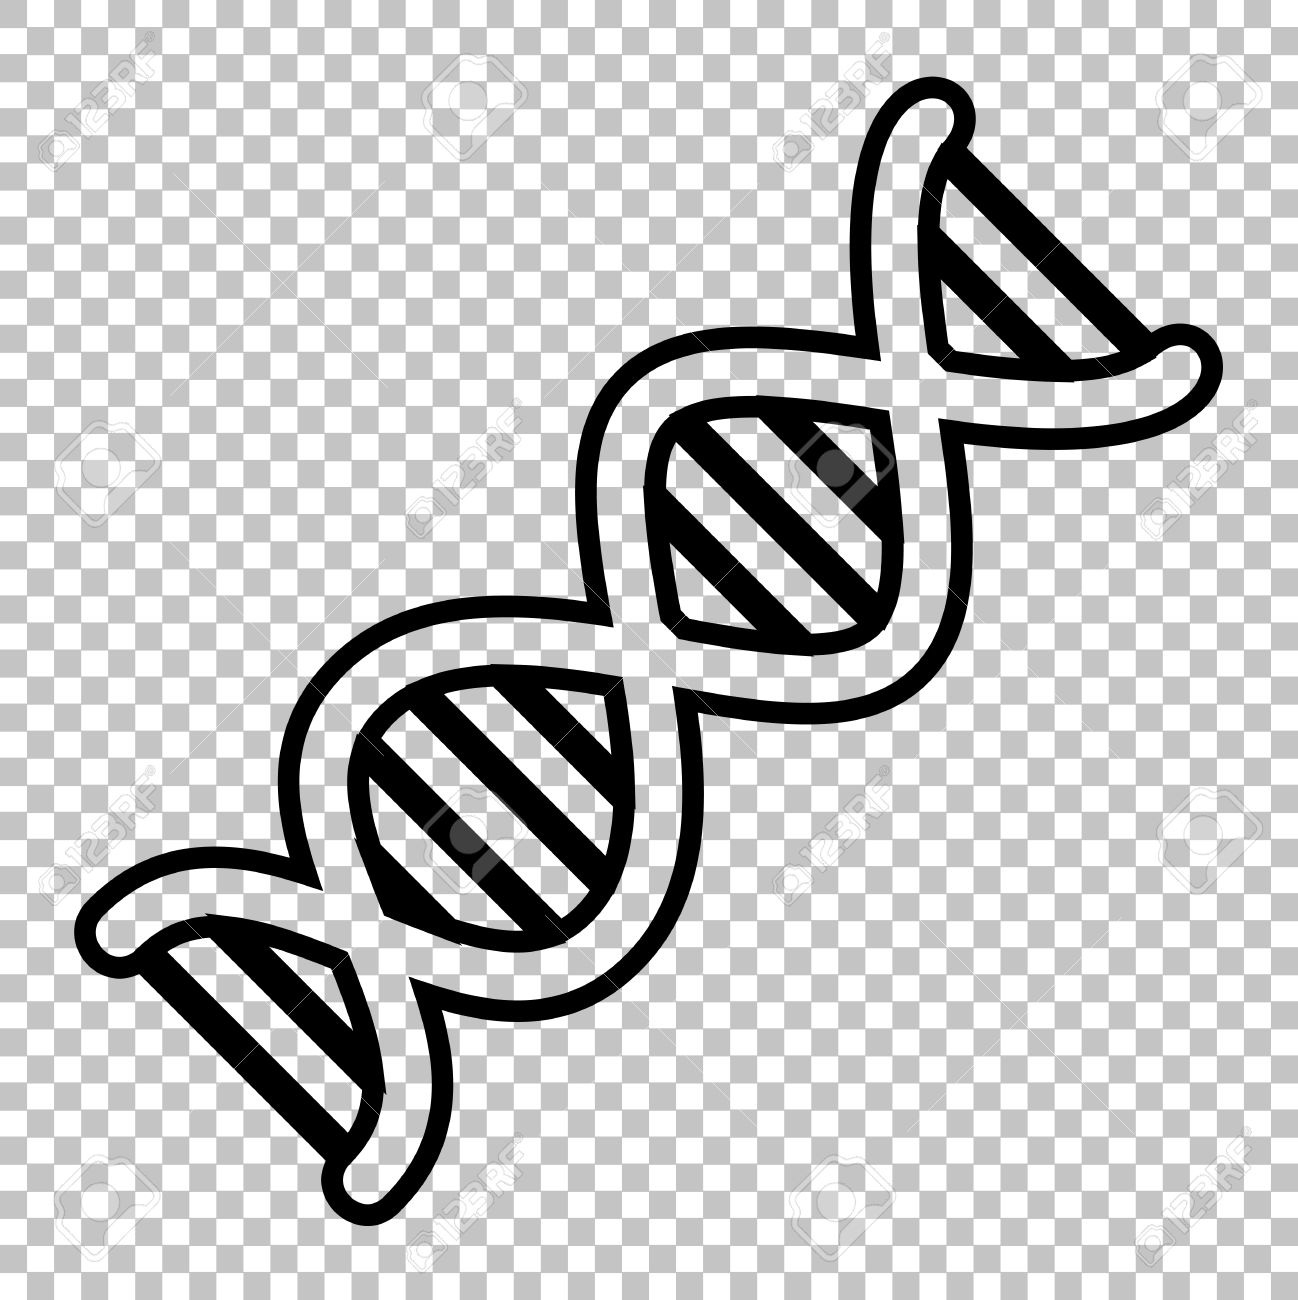 Dna clipart. Transparent background writings and